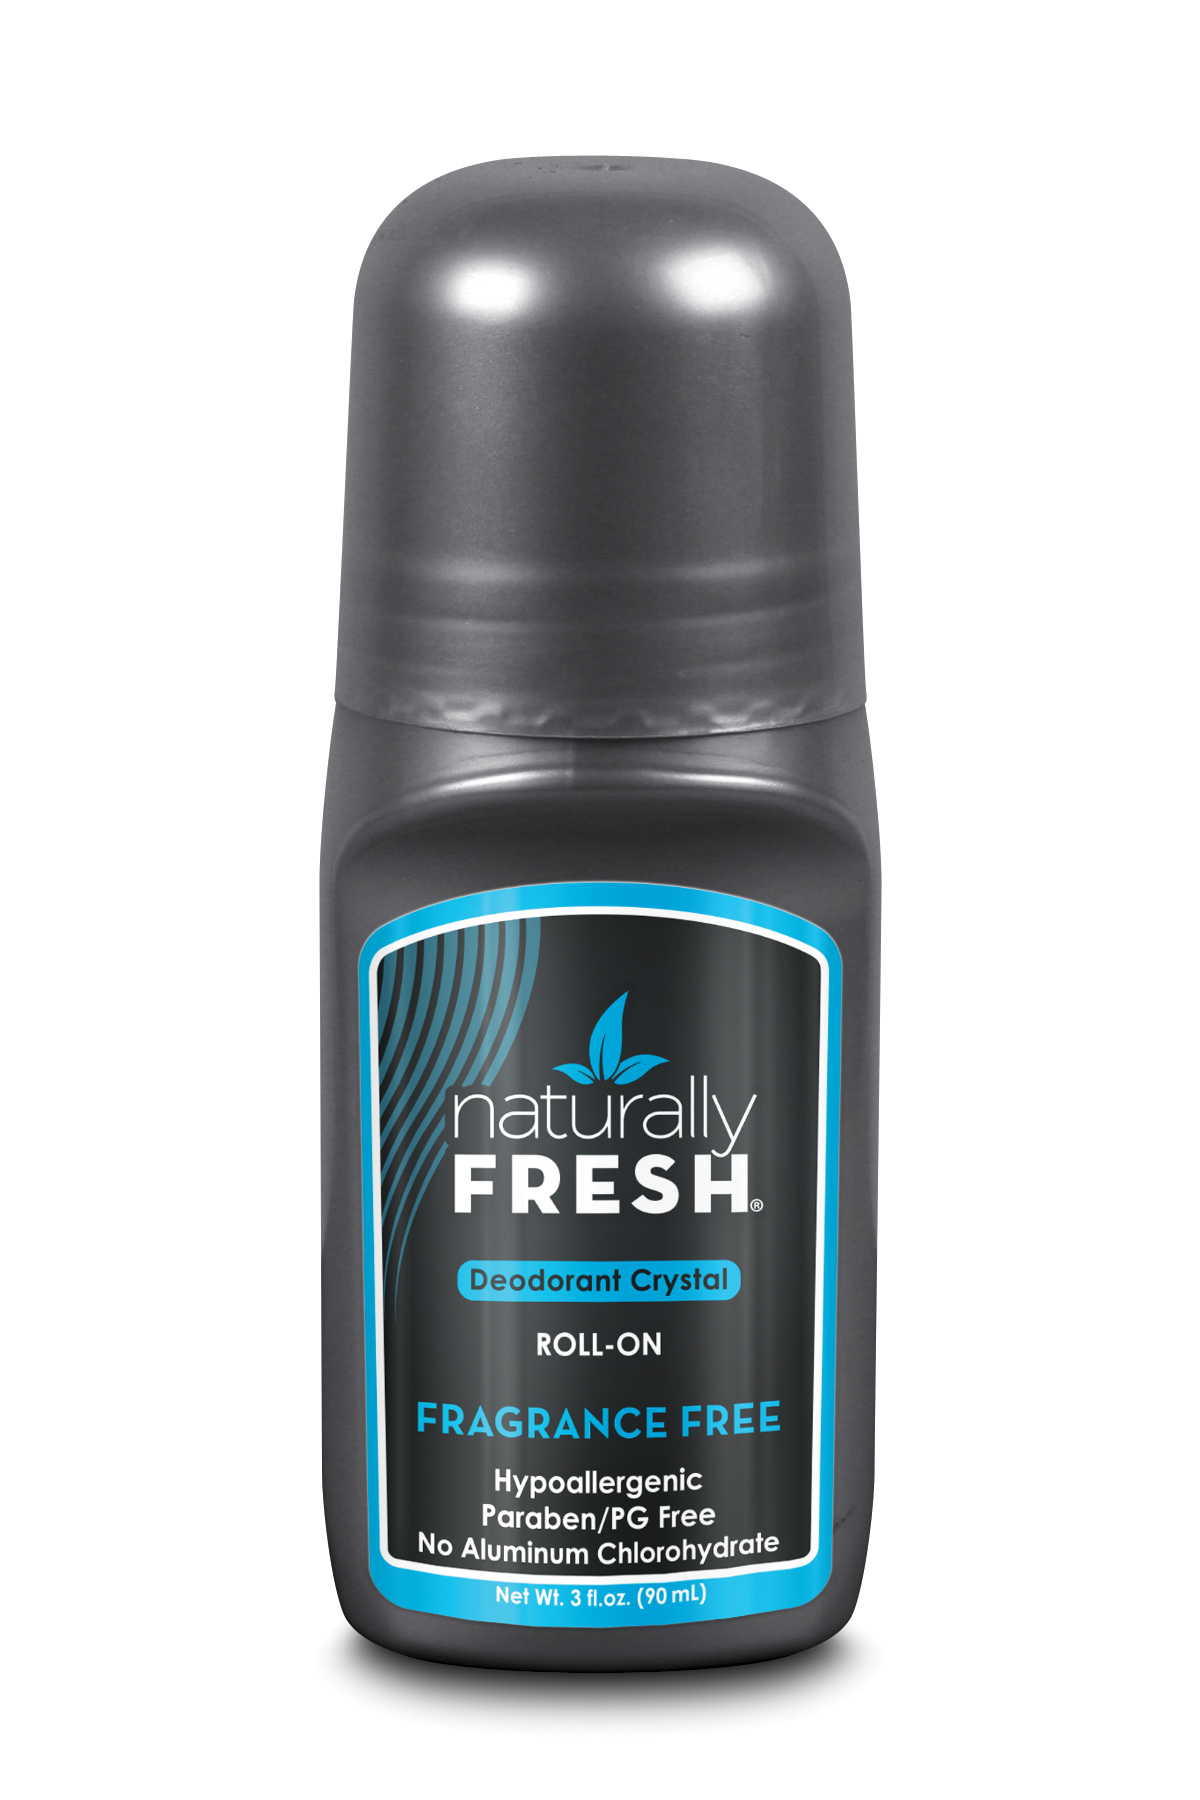 Deodorant Crystal Roll-On Fragrance Free 90ml (Grey) (Currently Unavailable)